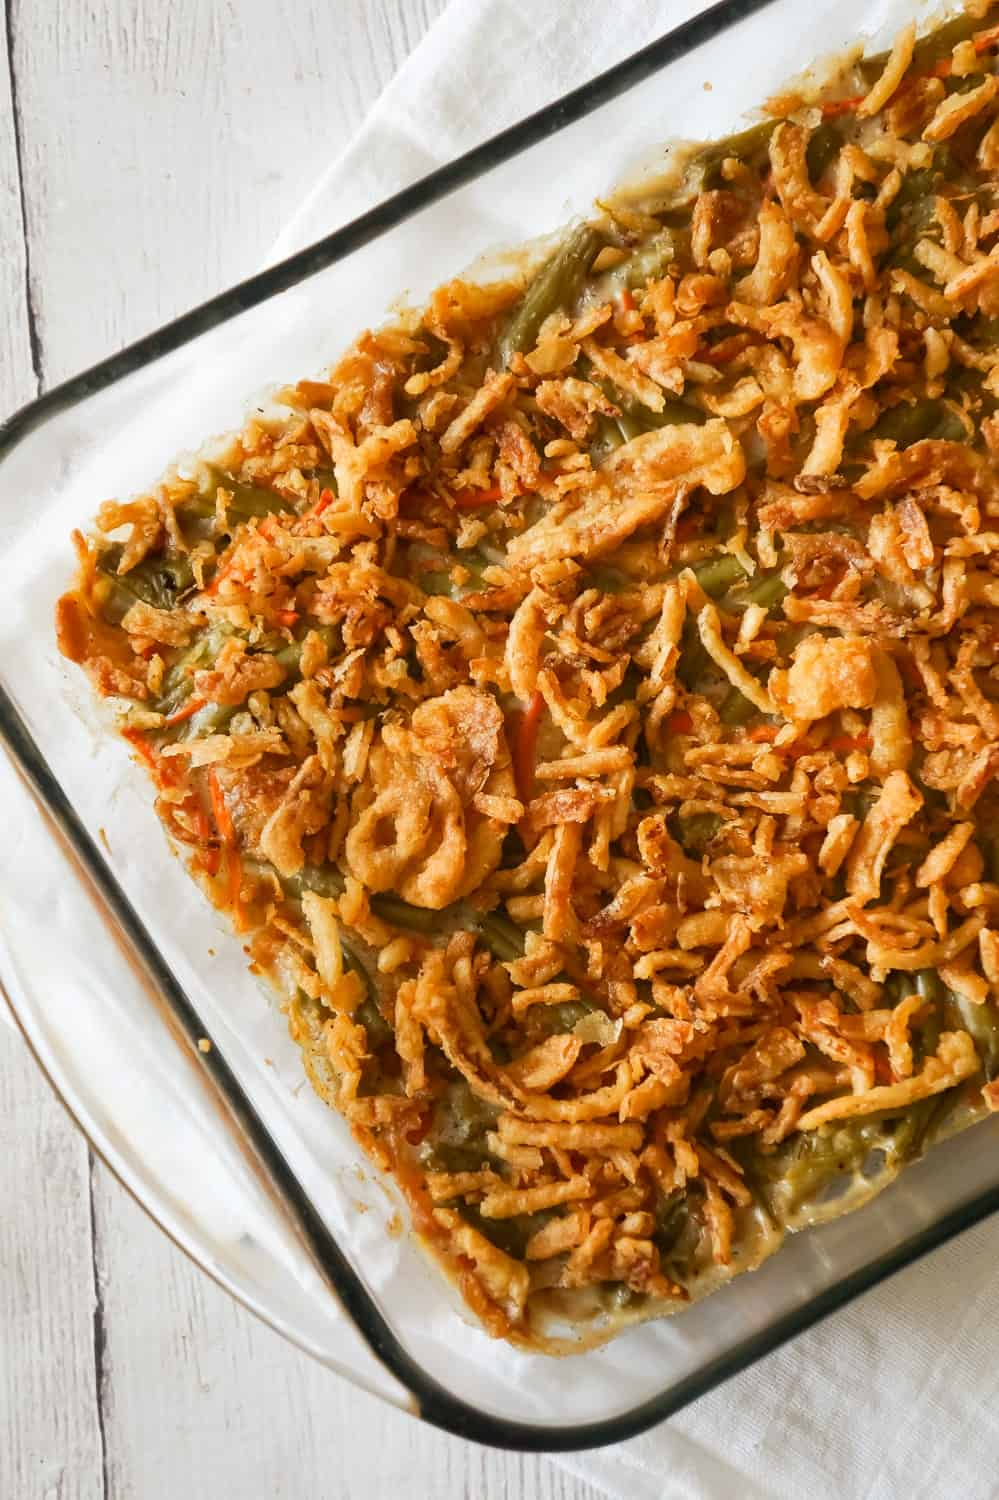 Green Bean Casserole with Campbell's Soup is a simple and delicious side dish recipe made with canned green beans, matchstick carrots, cream of mushroom soup and French's fried onions.